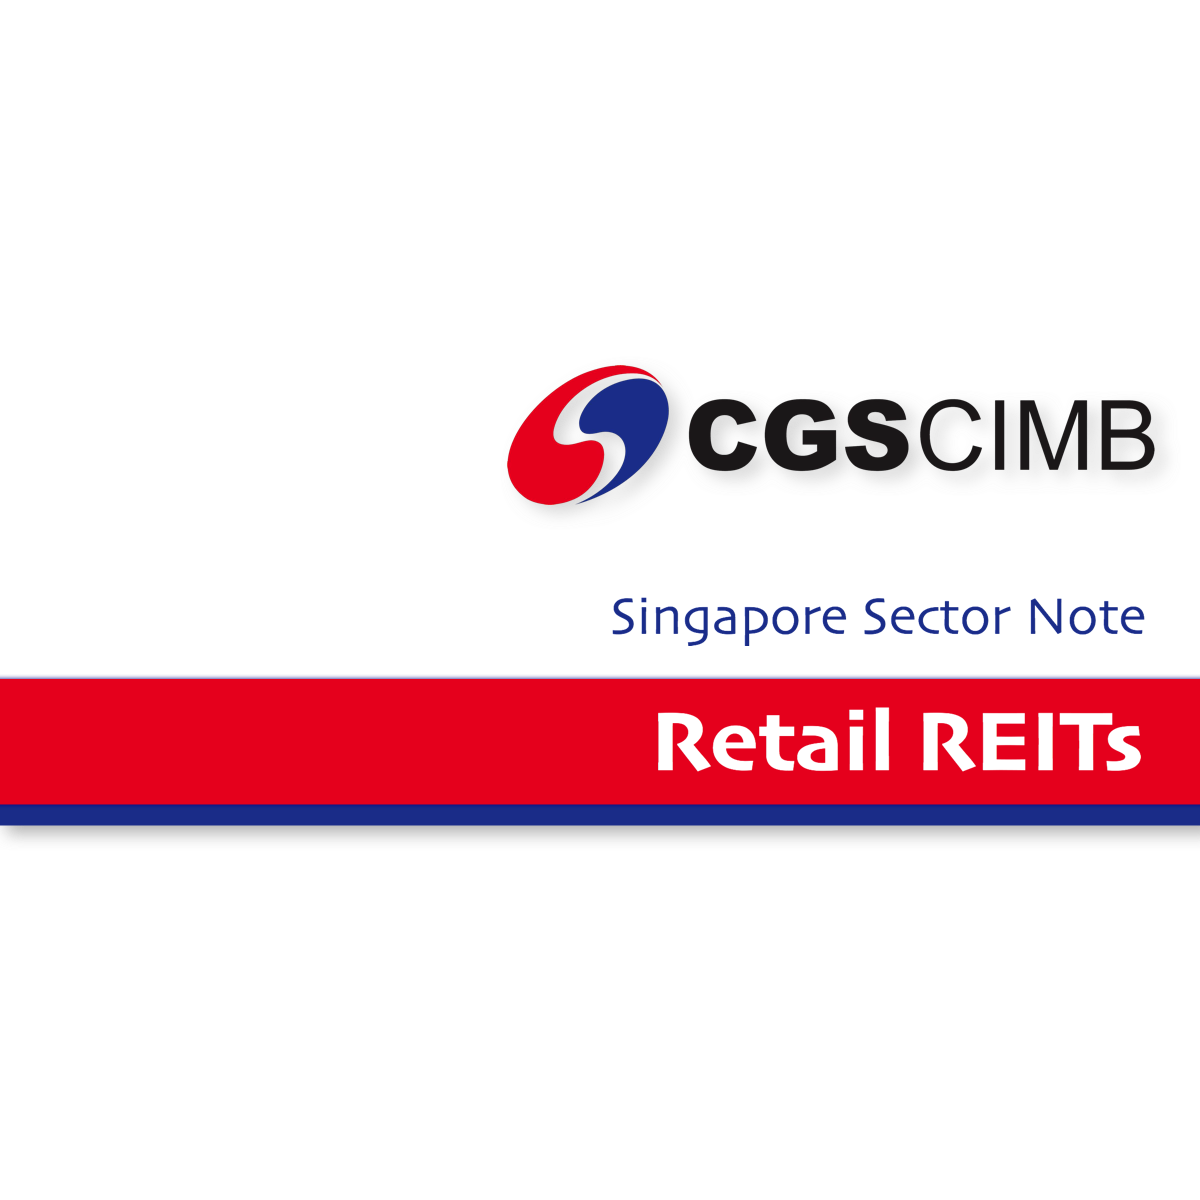 Singapore Retail REITs - CGS CIMB Research | SGinvestors.io